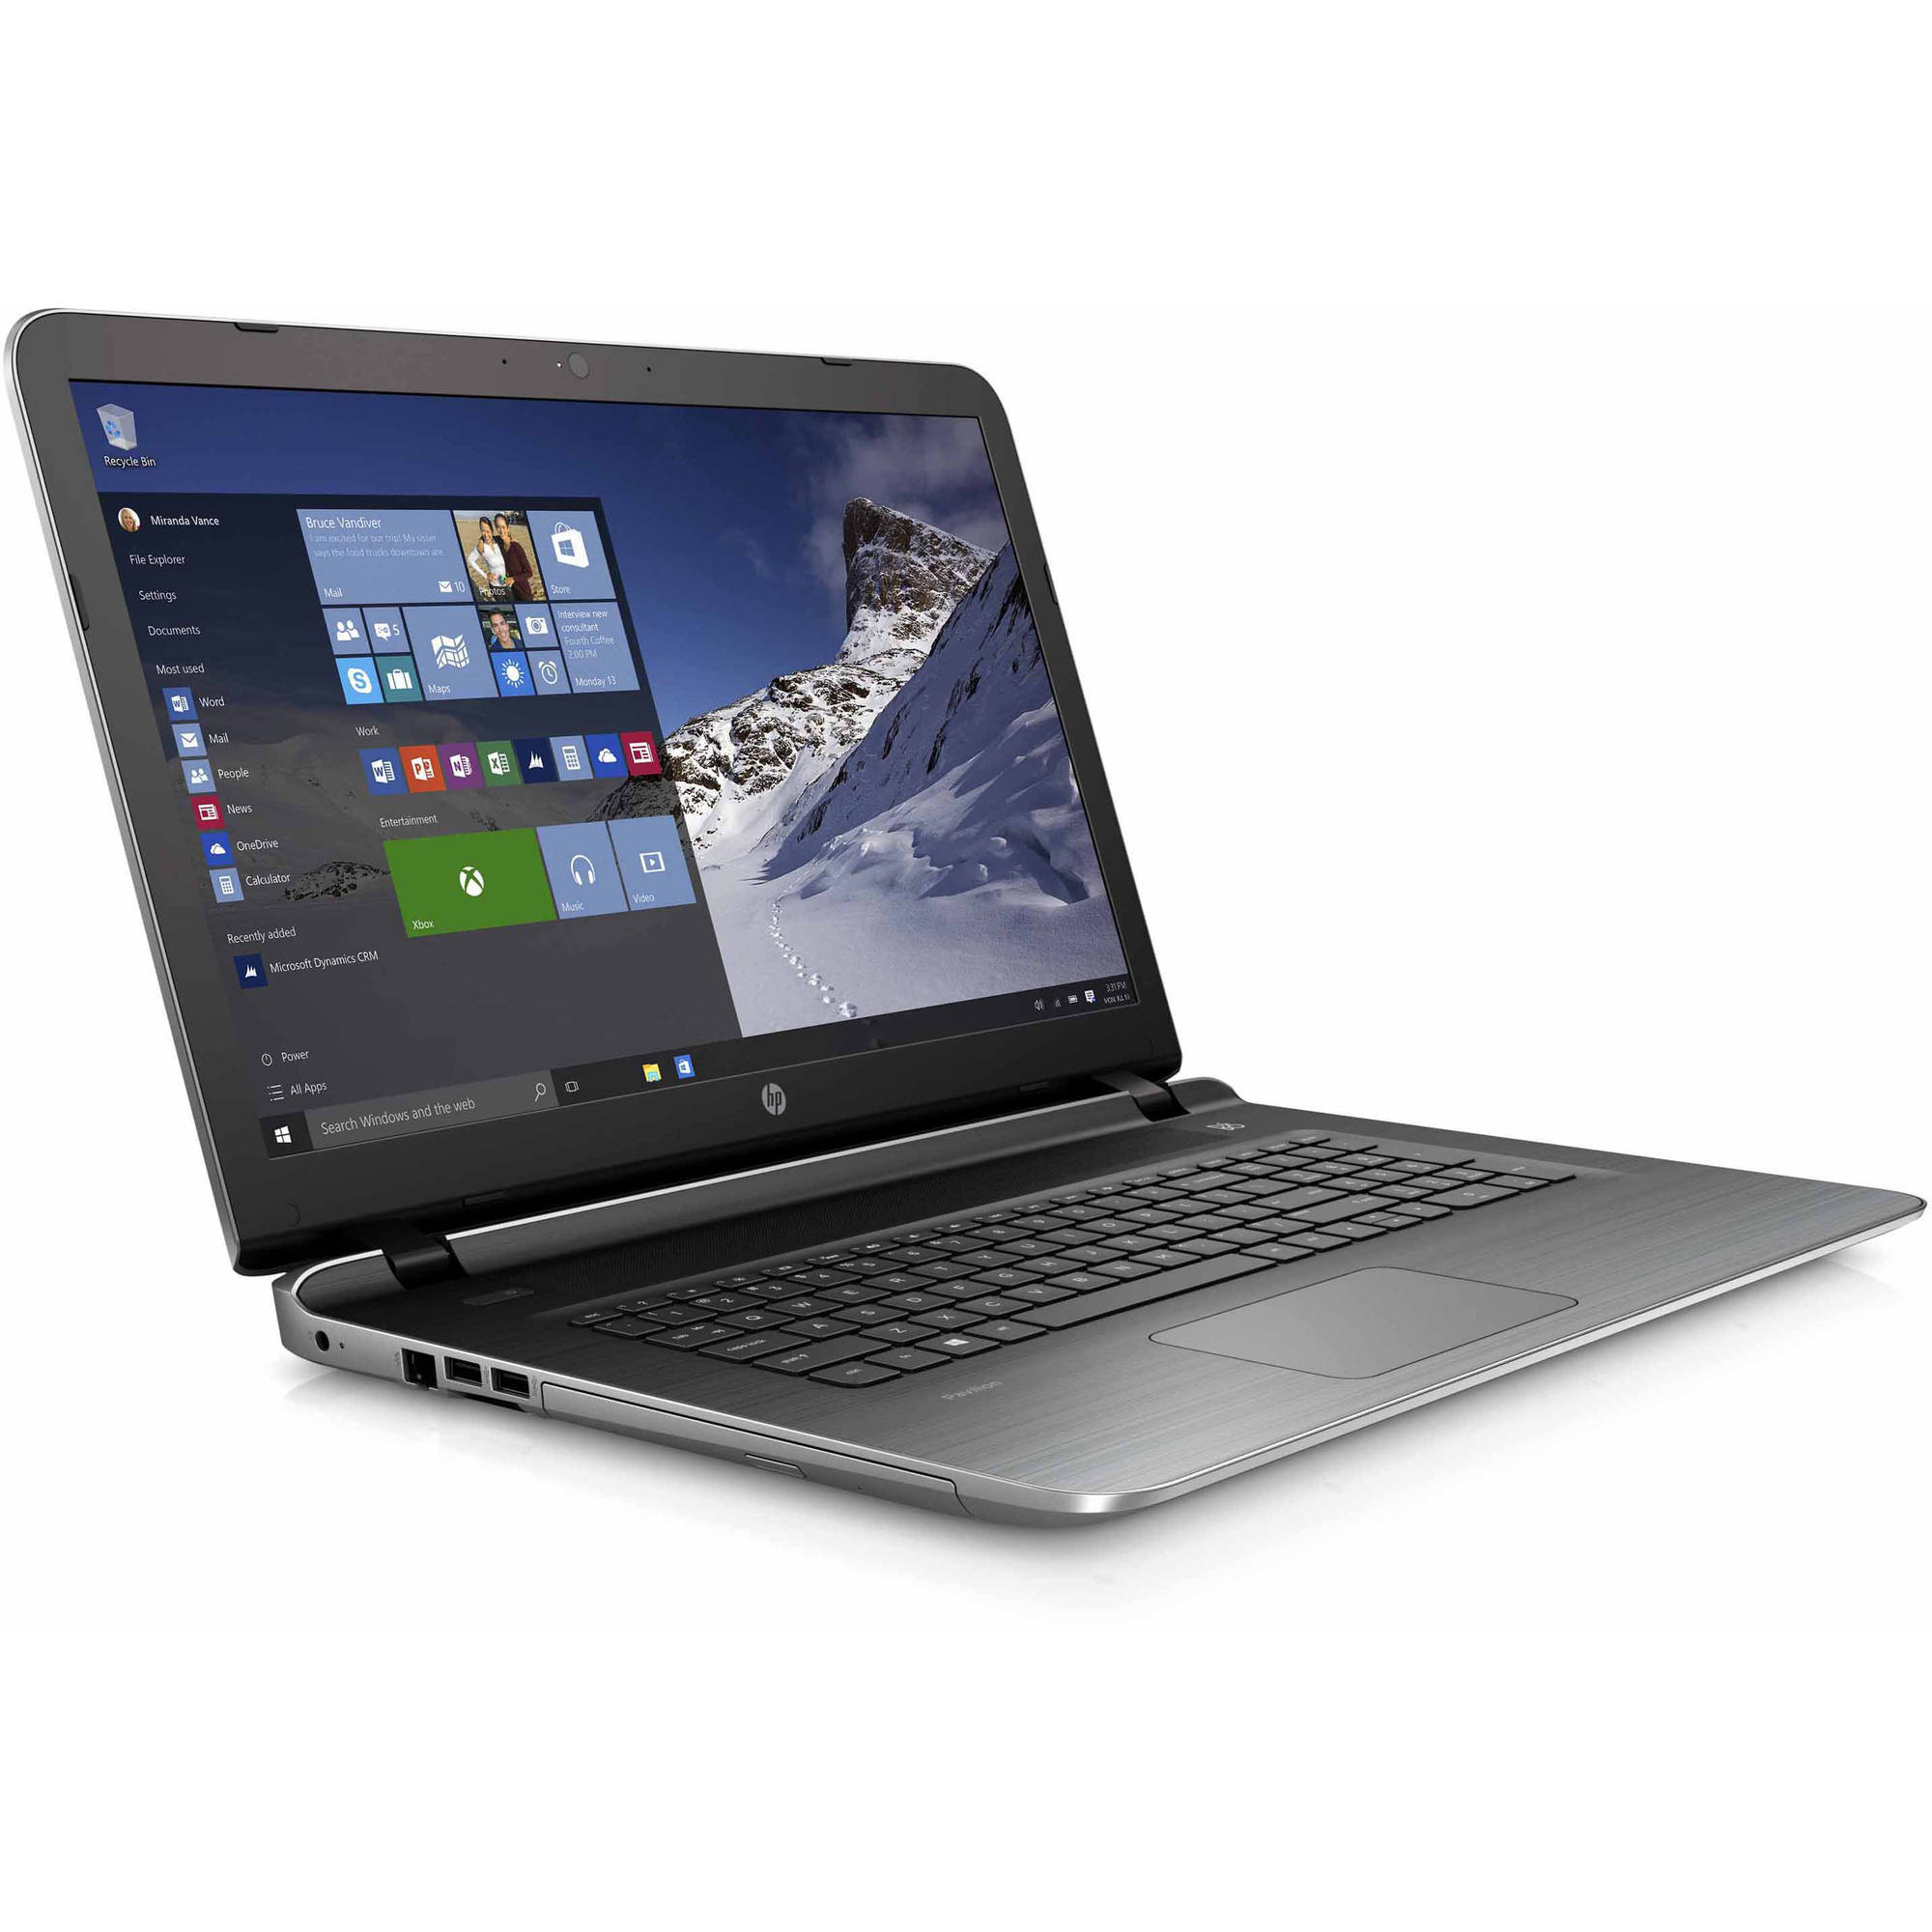 "HP Silver 17.3"" Pavilion 17-g121wm Laptop PC with AMD A10-8700P Processor, 8GB Memory, 1TB Hard Drive and Windows 10 Home"